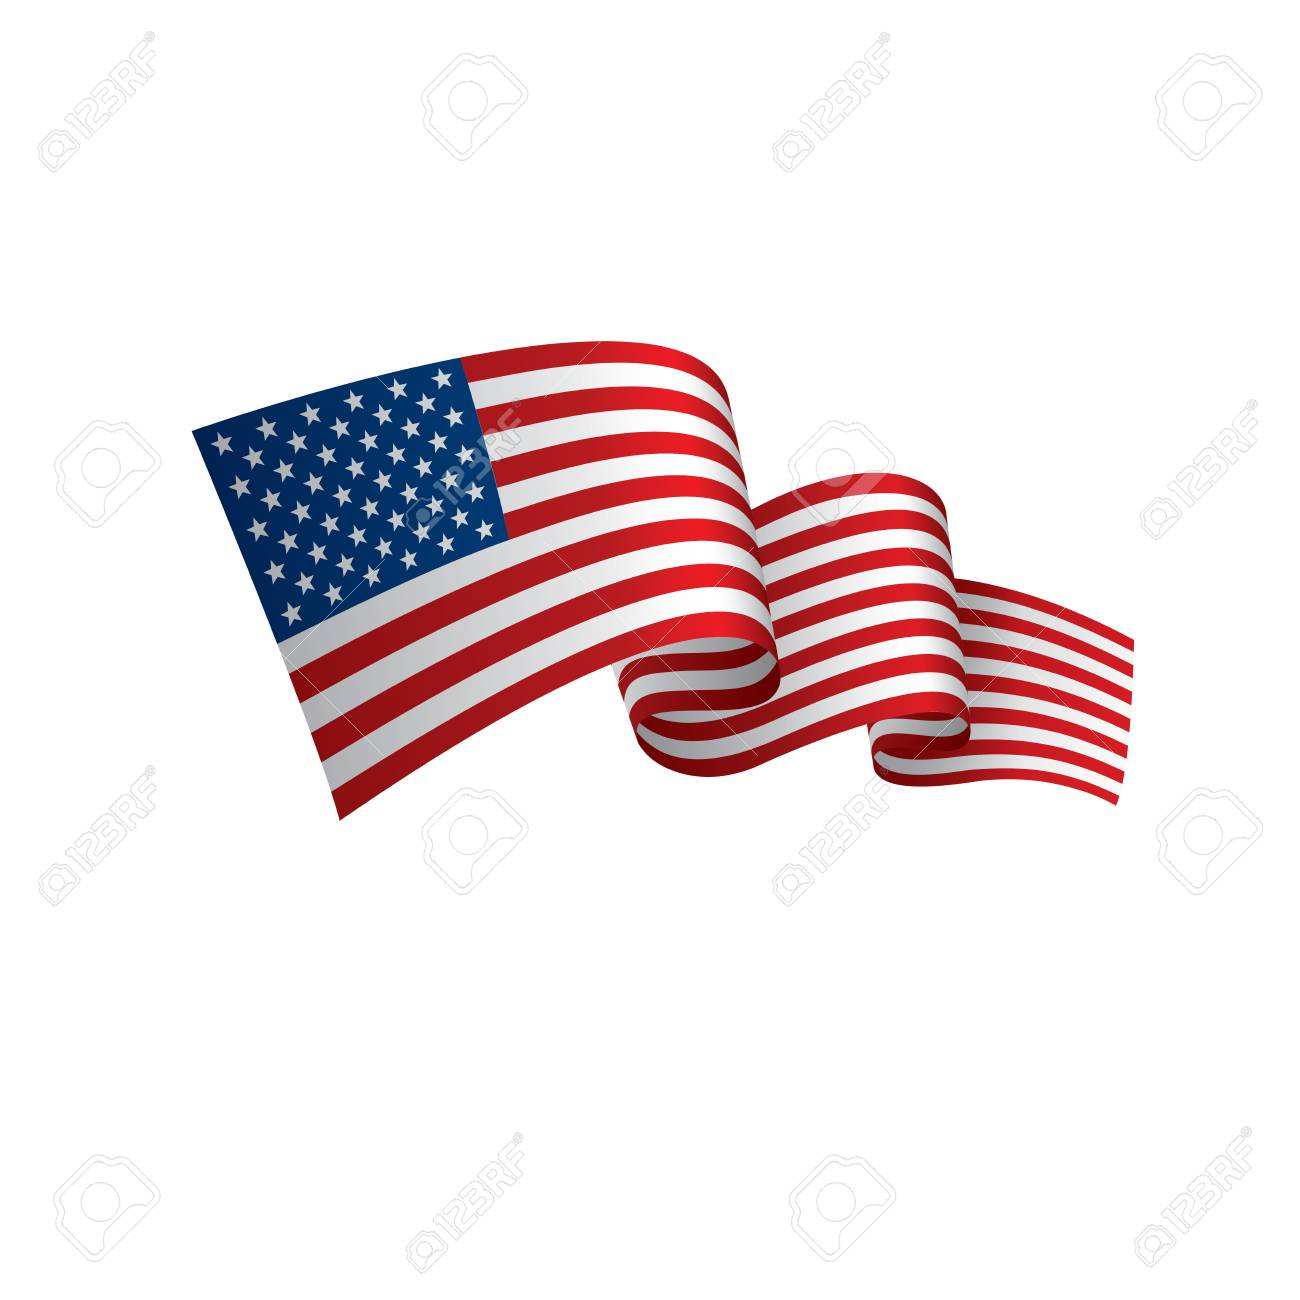 hight resolution of usa flag vector illustration on a white background stock vector 92845430